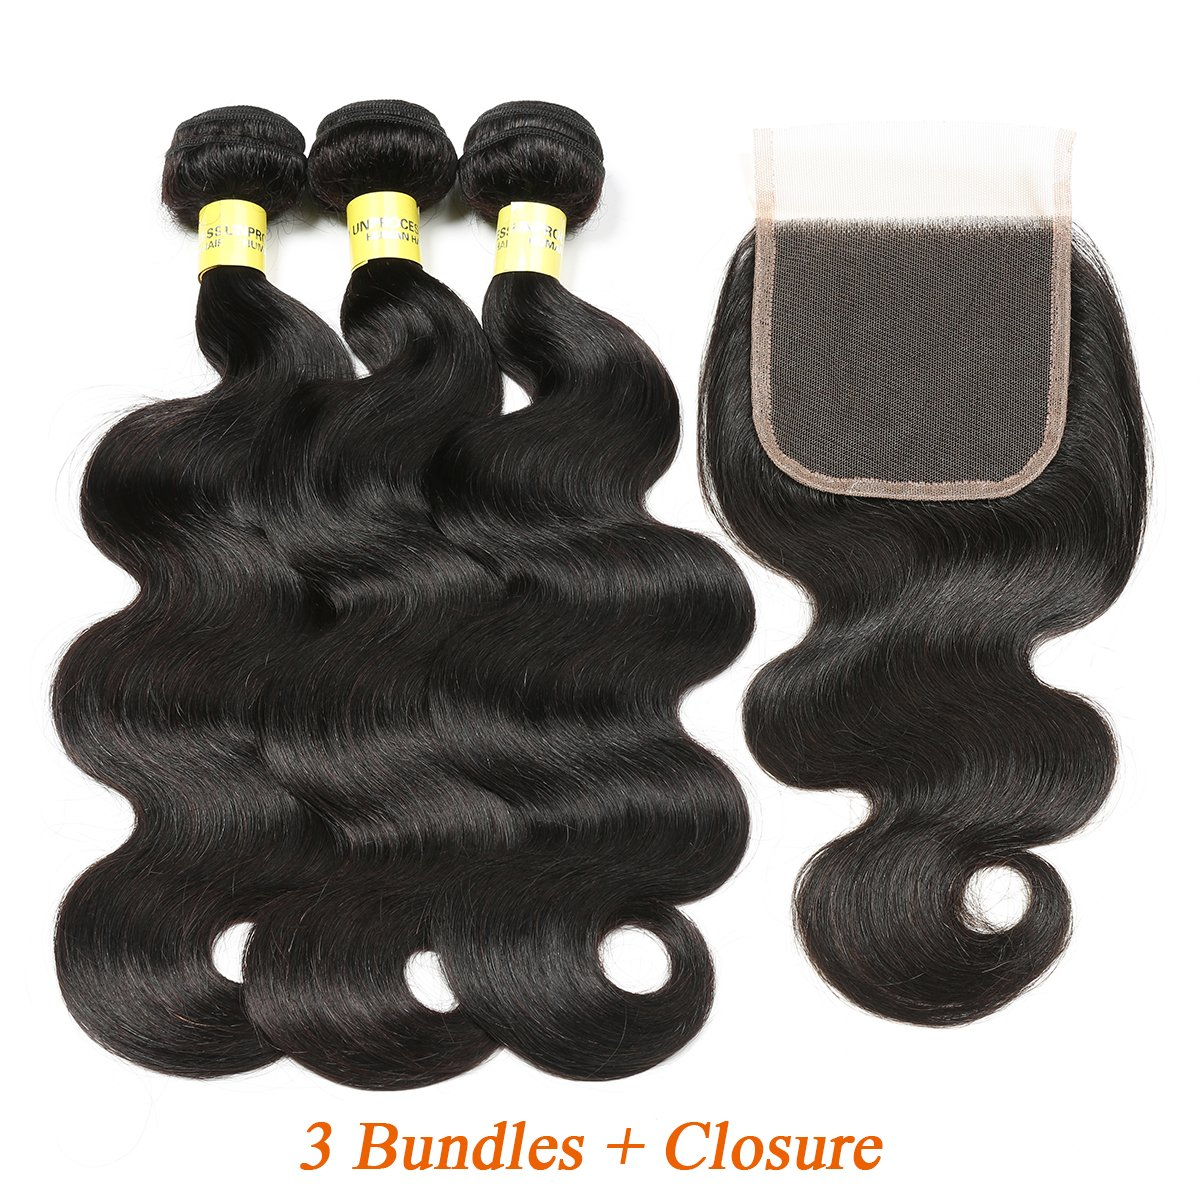 Mureen Brazilian Hair With Closure 8A 3 Bundles Body Wave Virgin Human Hair Bundles With Lace Closure 100% Unprocessed Hair Extensions Natural Black Color (20 22 24 + 18, Three Part)